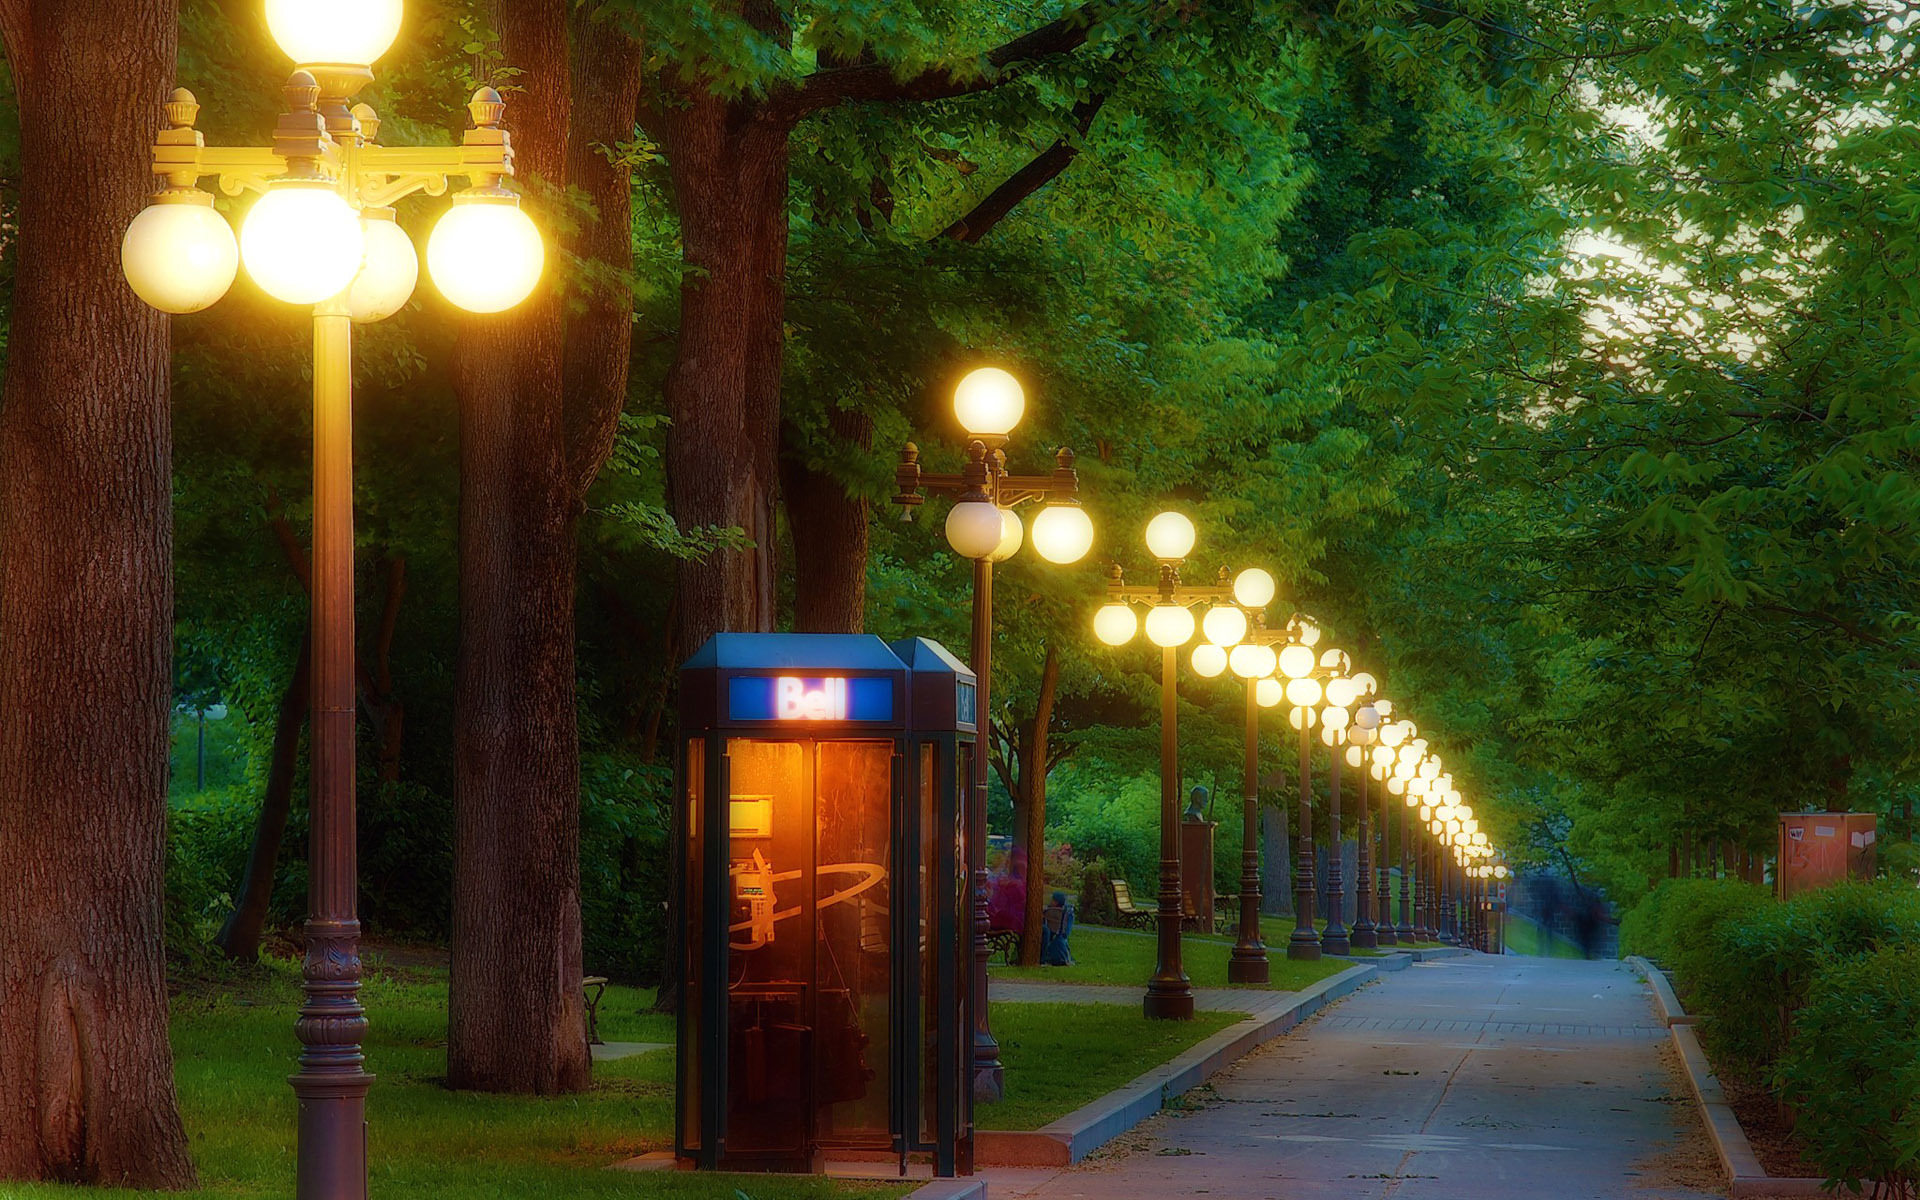 Telephone booth in the park